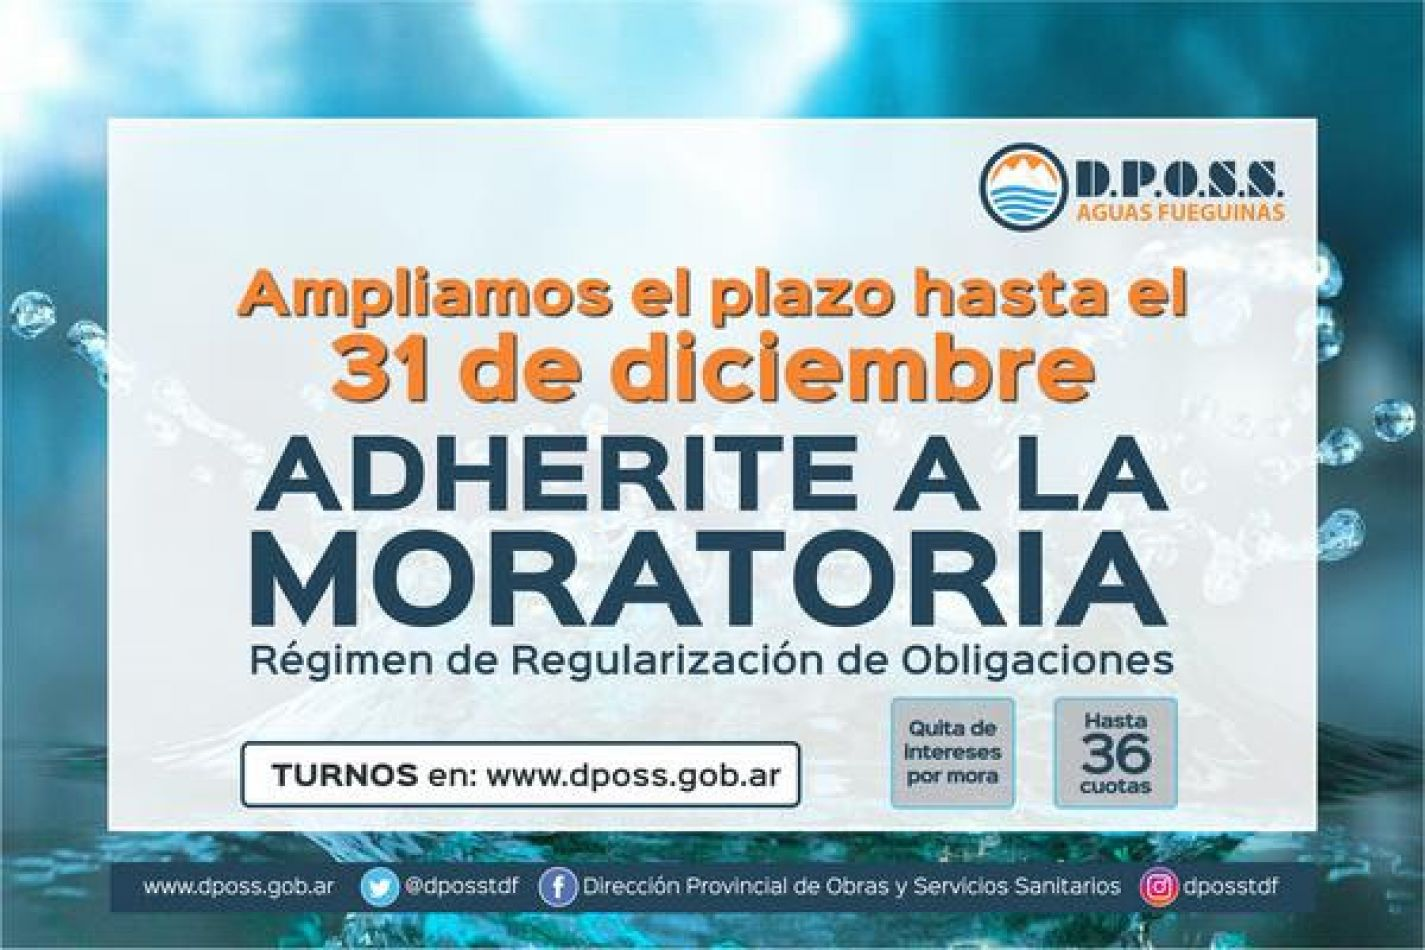 Moratoria Dposs